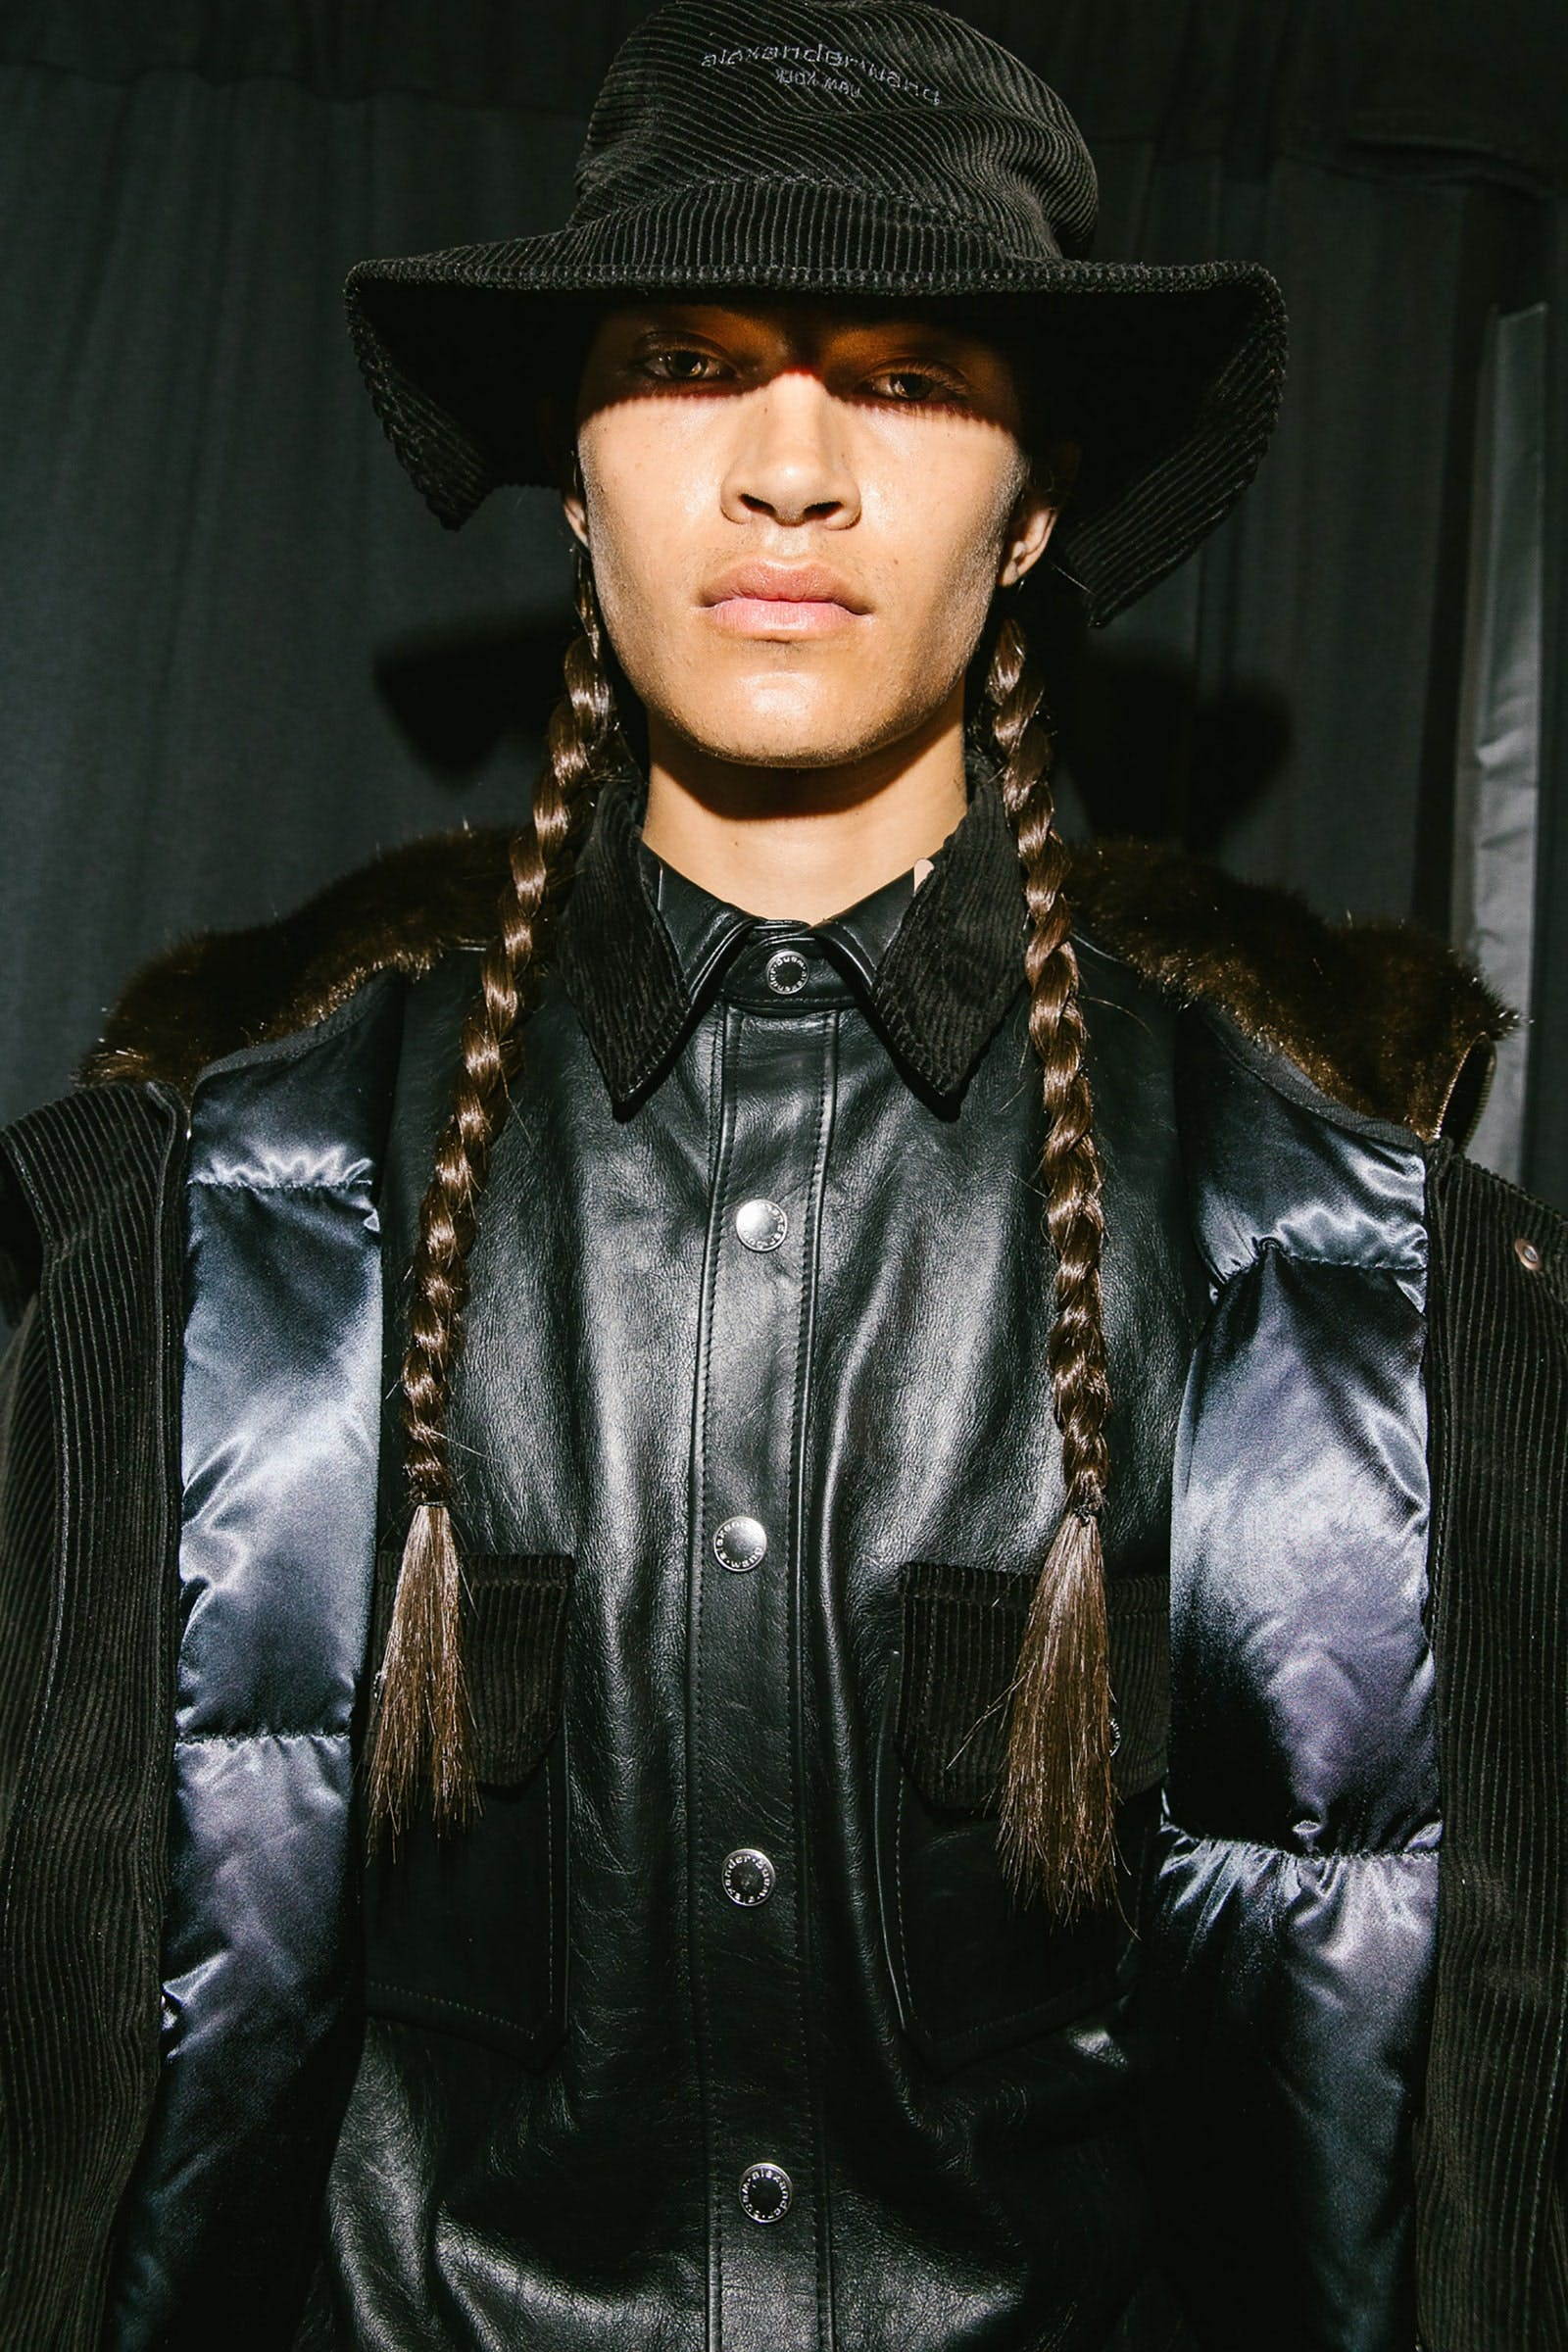 Alexander Wang Backstage Embroidered Corduroy Bucket Hat in Black Snap Button-up Leather Shirt Puffer Jacket in Black Spring 20 RTW